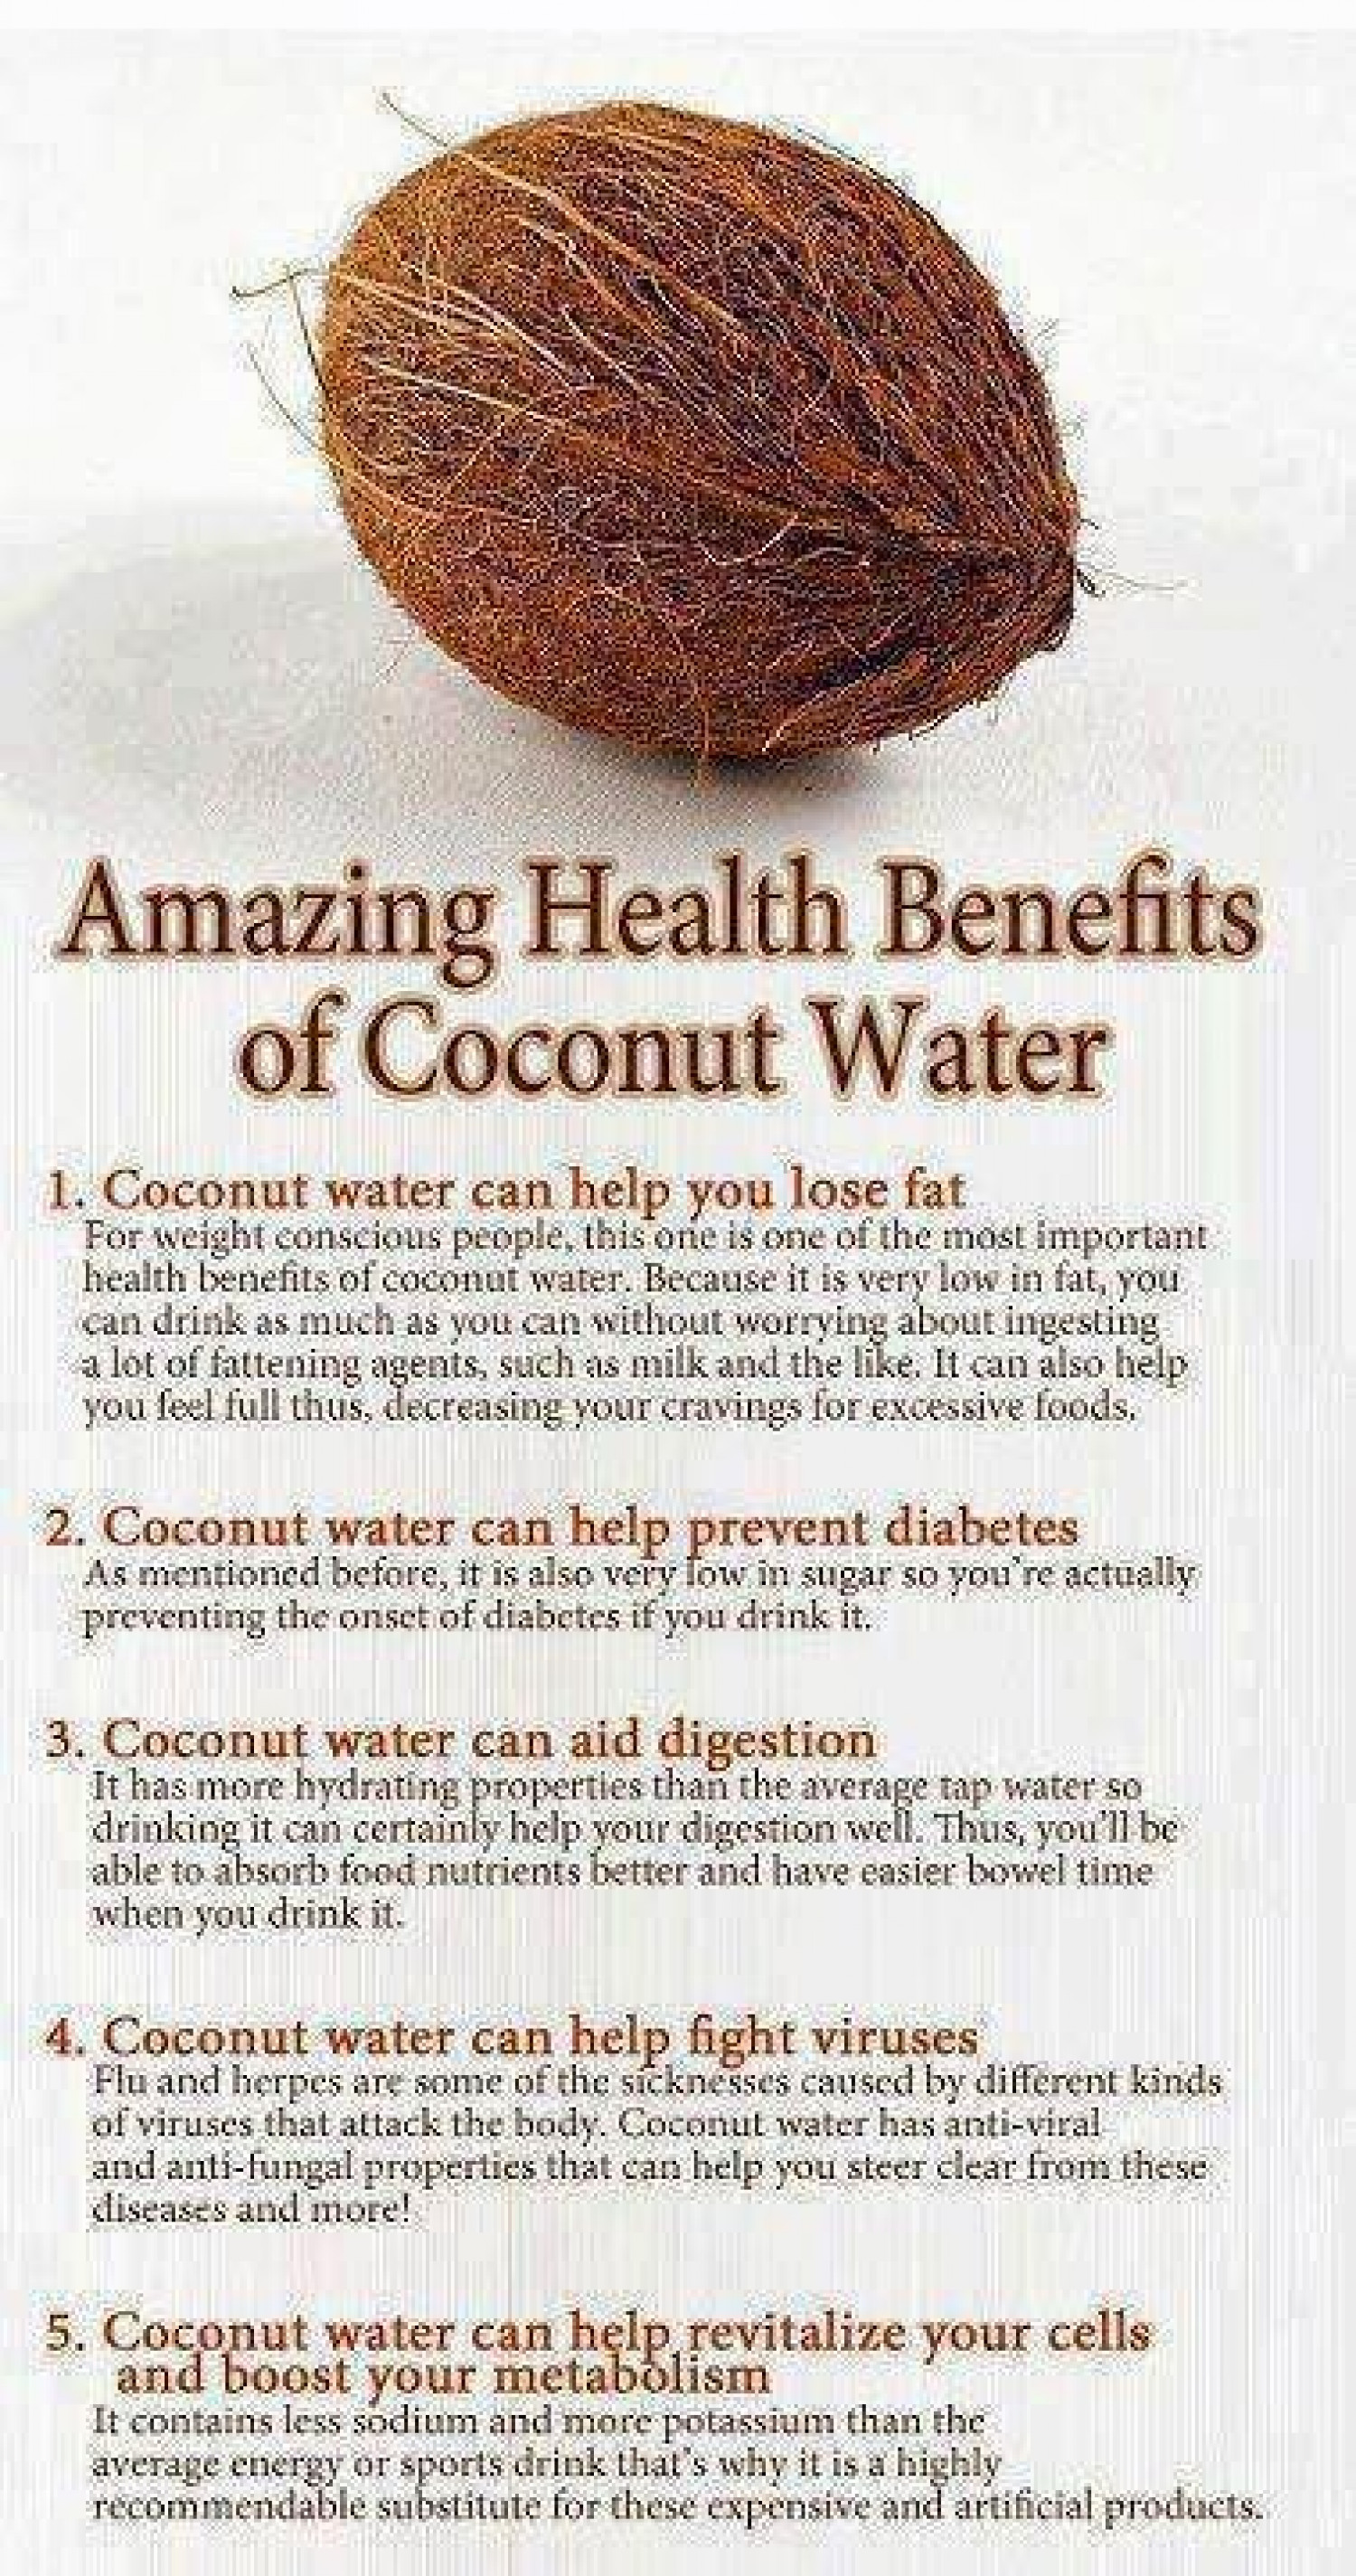 is coconut water good for diet